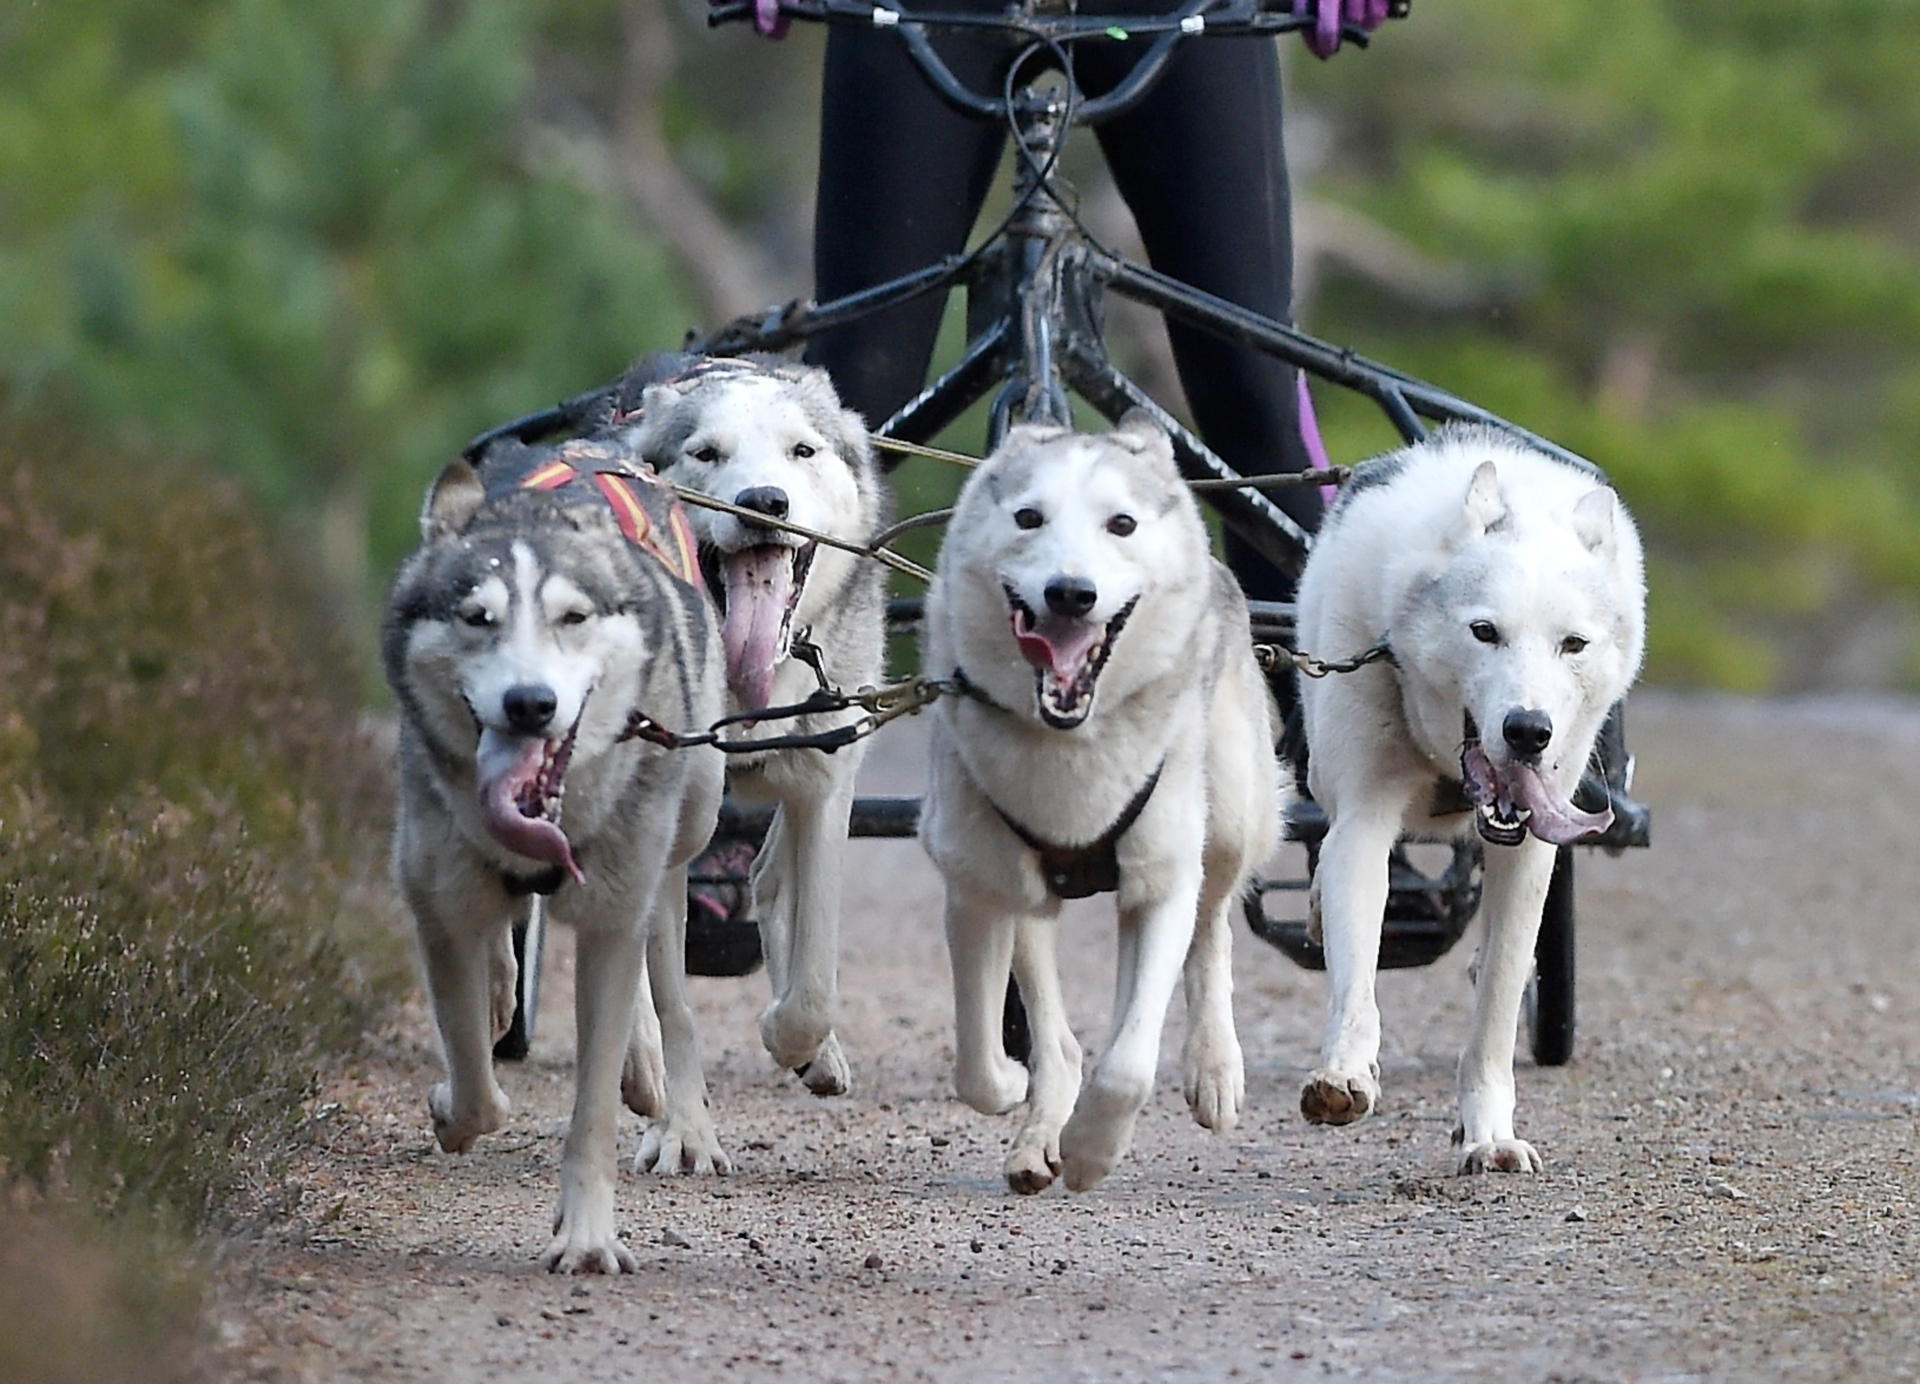 The  Aviemore Sled Dog Rally took place this weekend in Glenmore Forest in Strathspey. Pictures by Sandy McCook